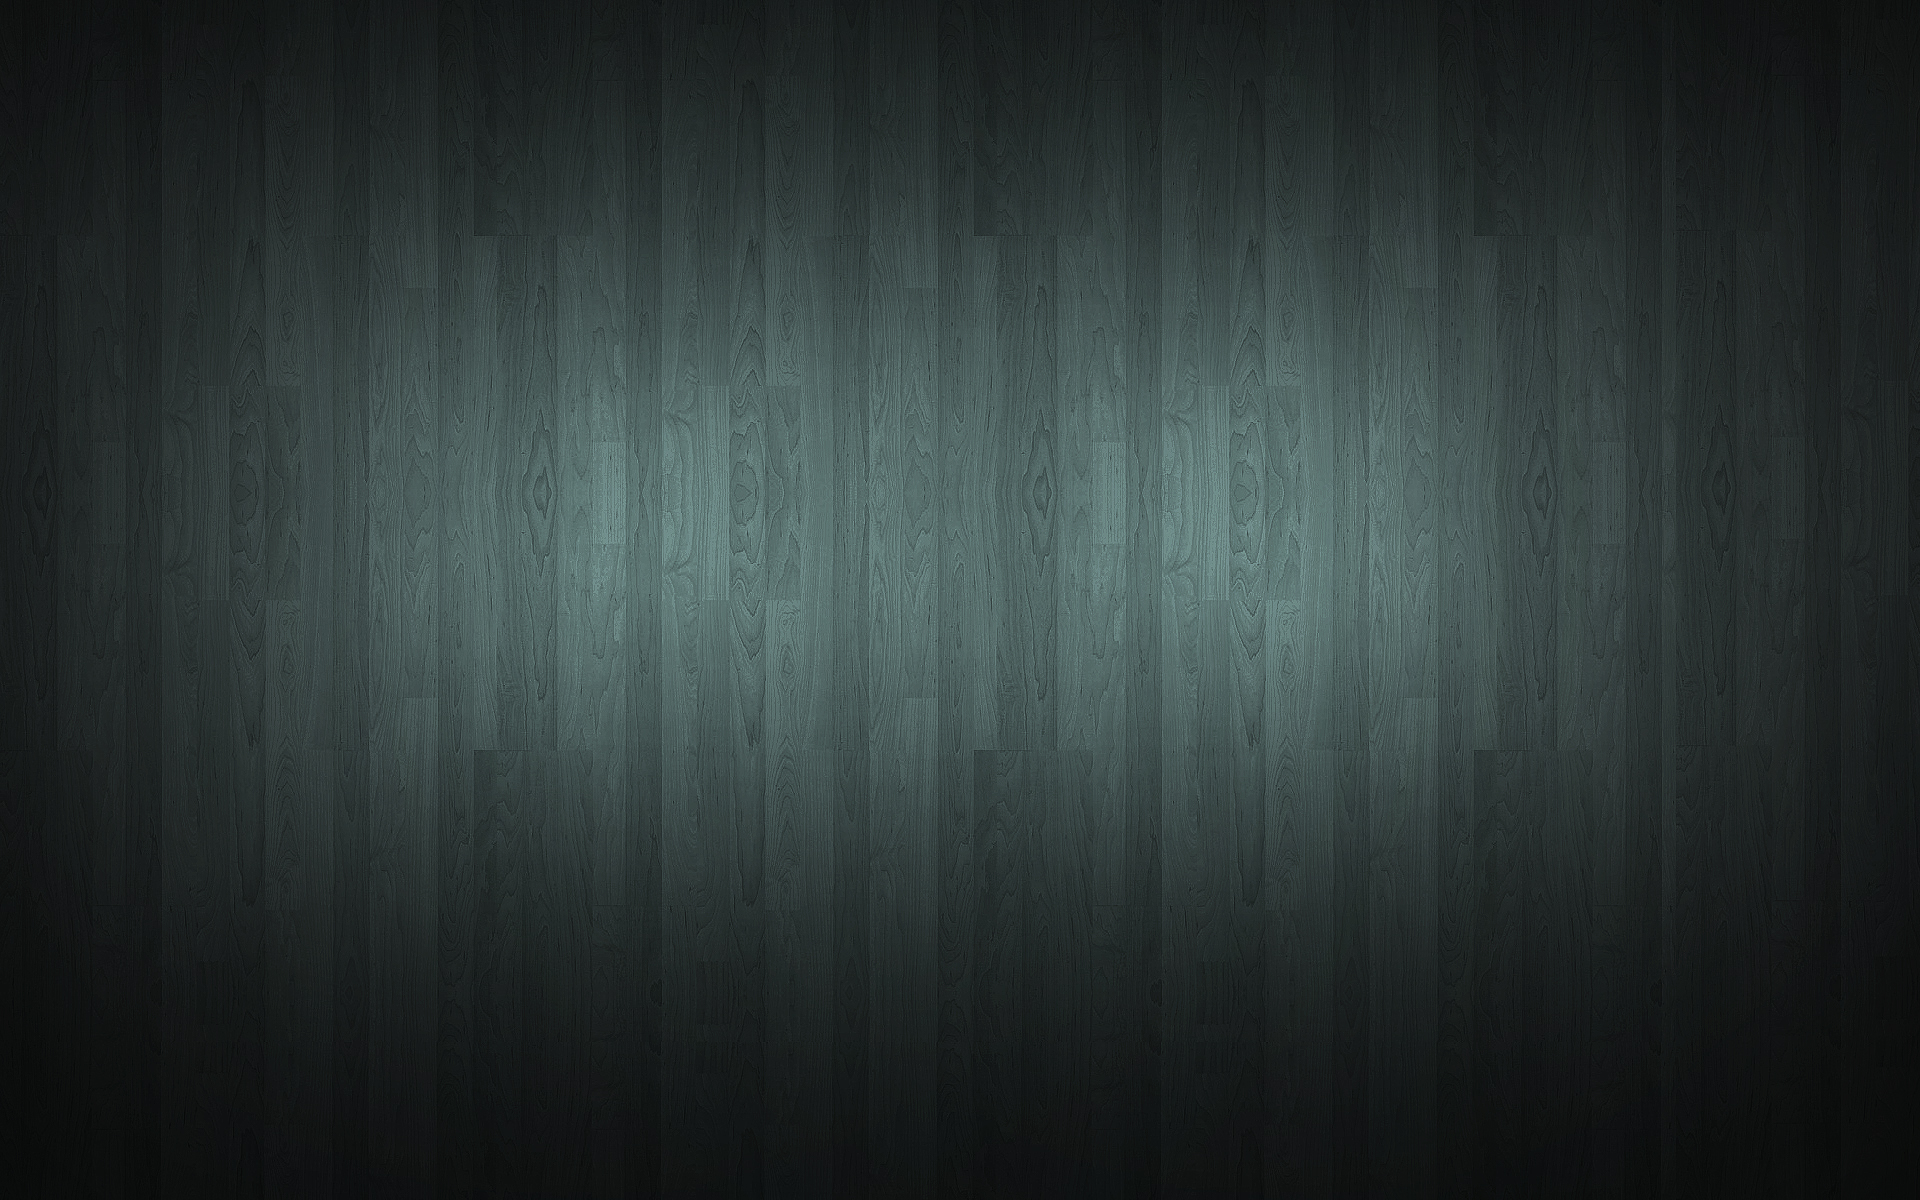 Dark Wood Flooring desktop wallpaper 1920x1200